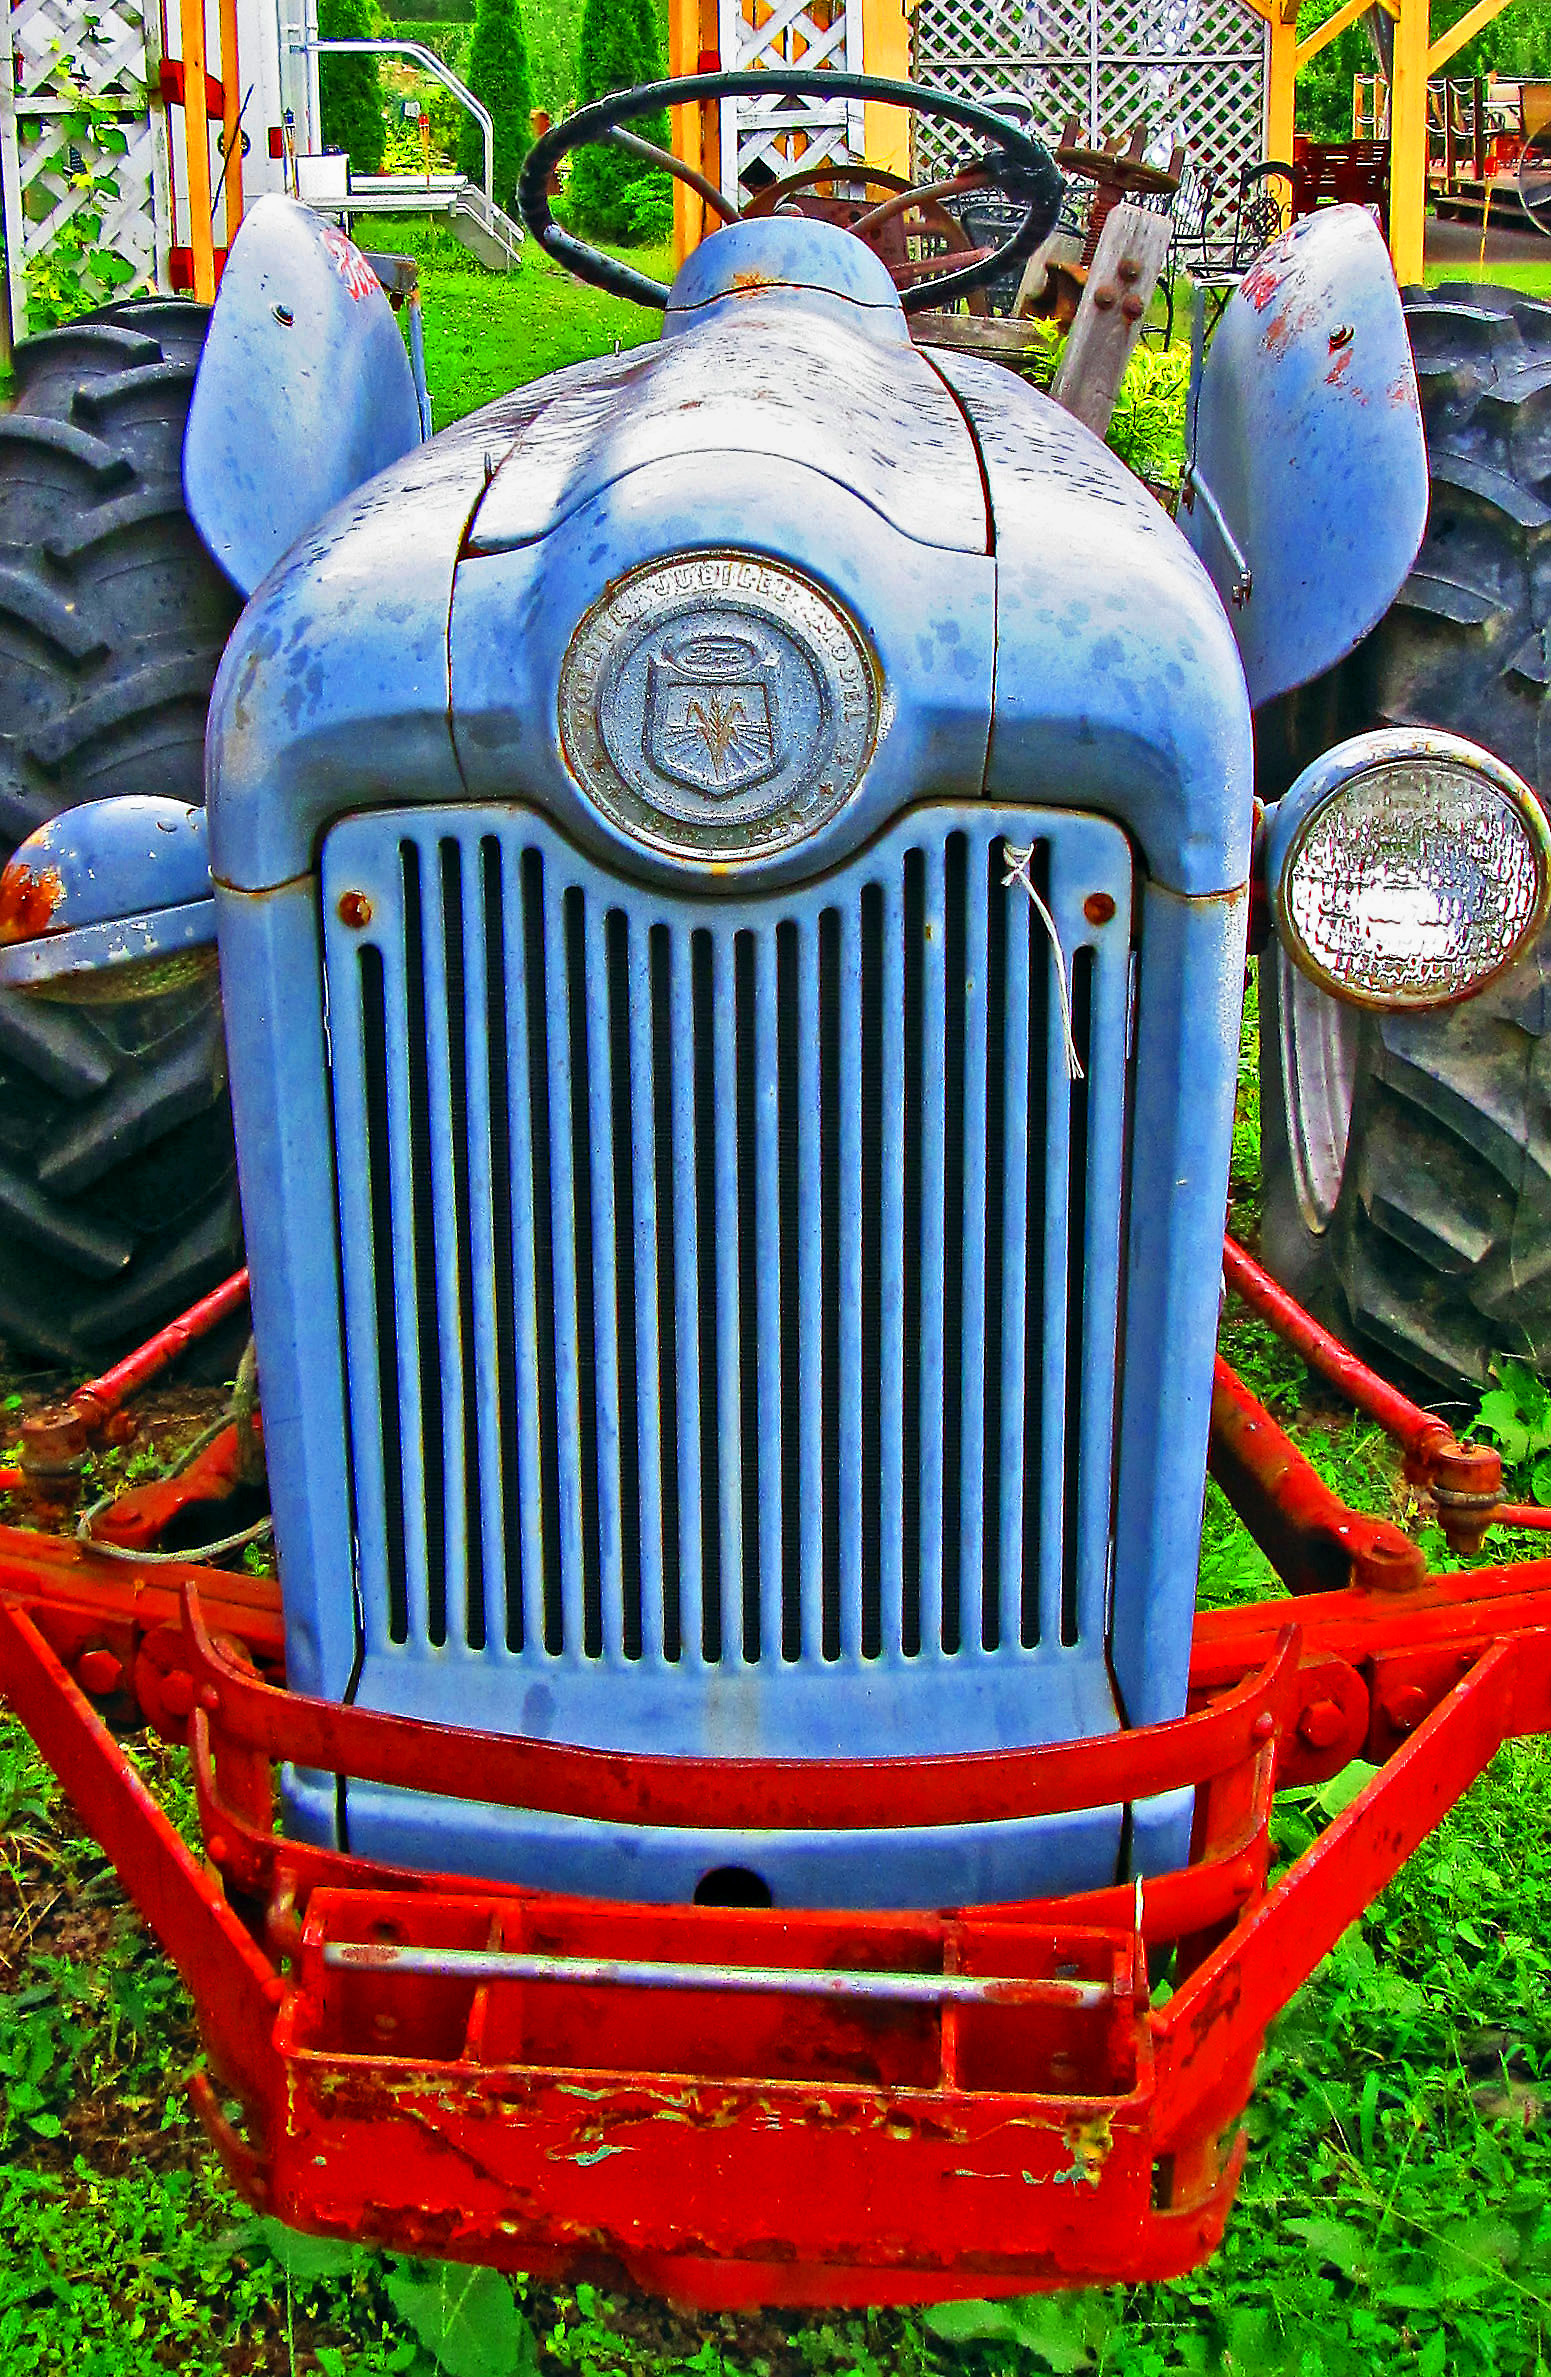 Streamline Hood & Front Grill Of 1953 Ford Tractor